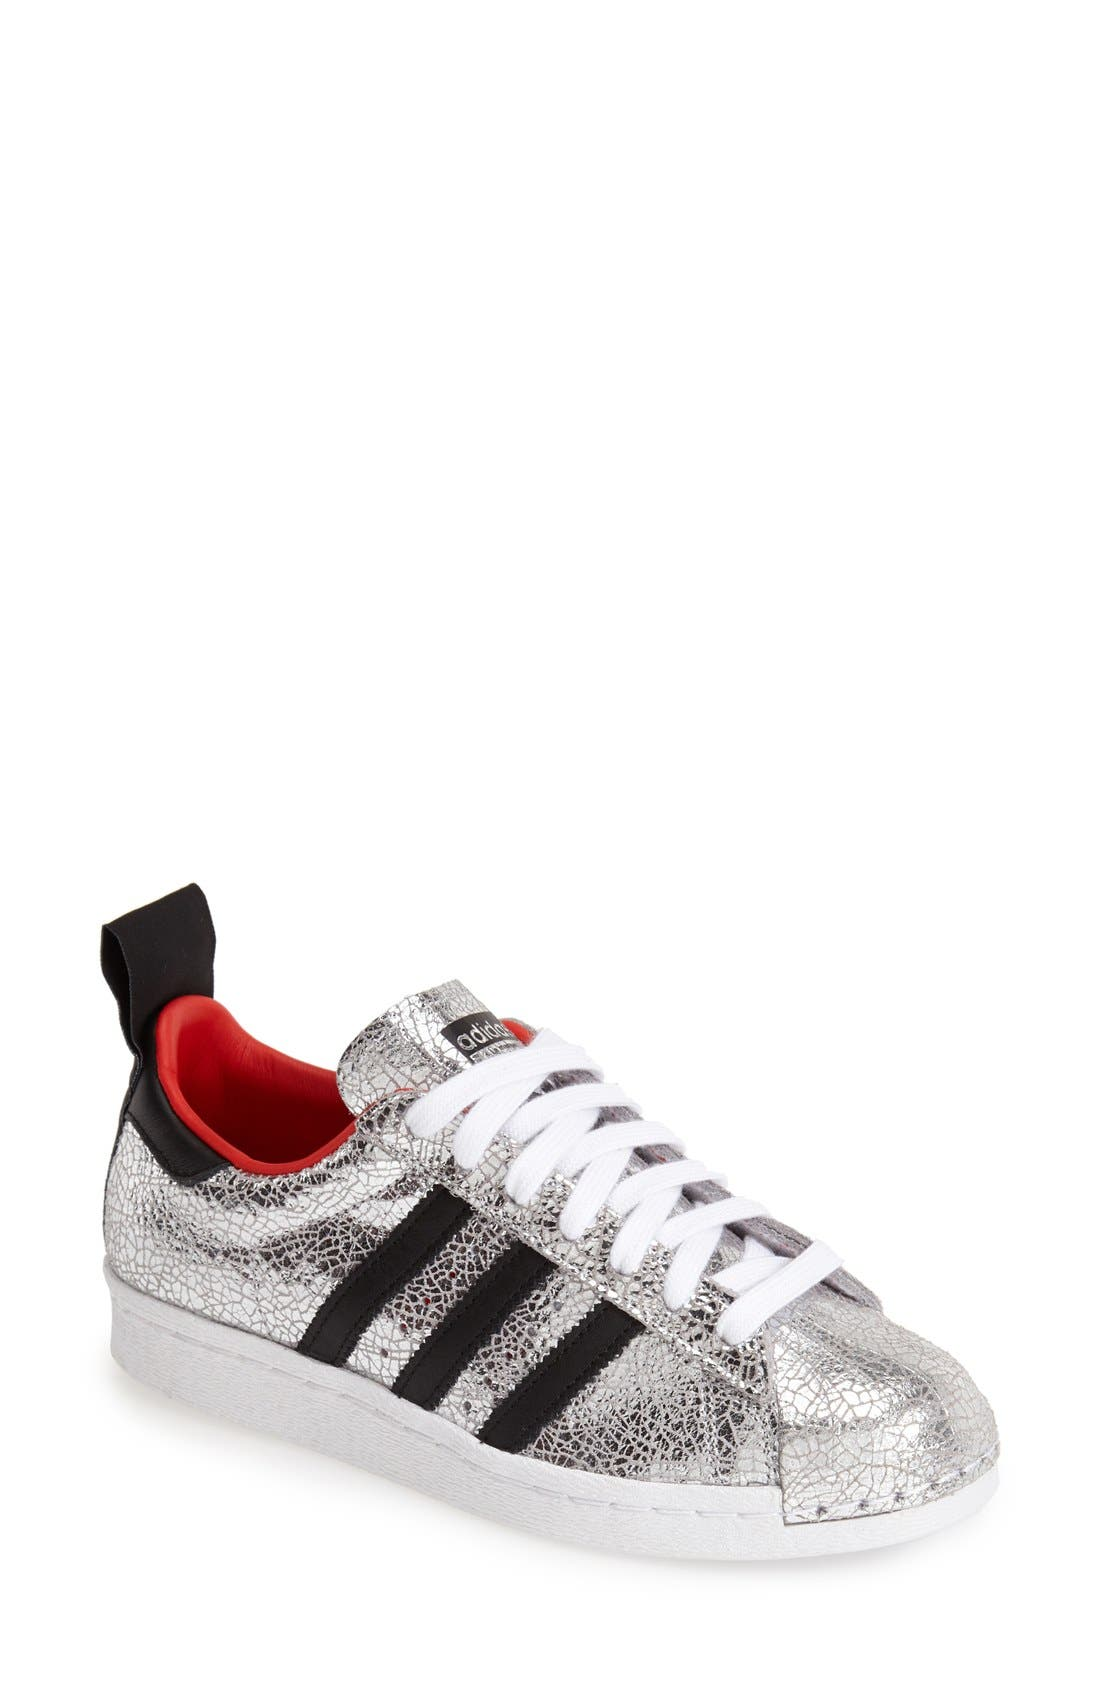 Alternate Image 1 Selected - Topshop for adidas Originals '80s Premium Superstar' Sneaker (Women)